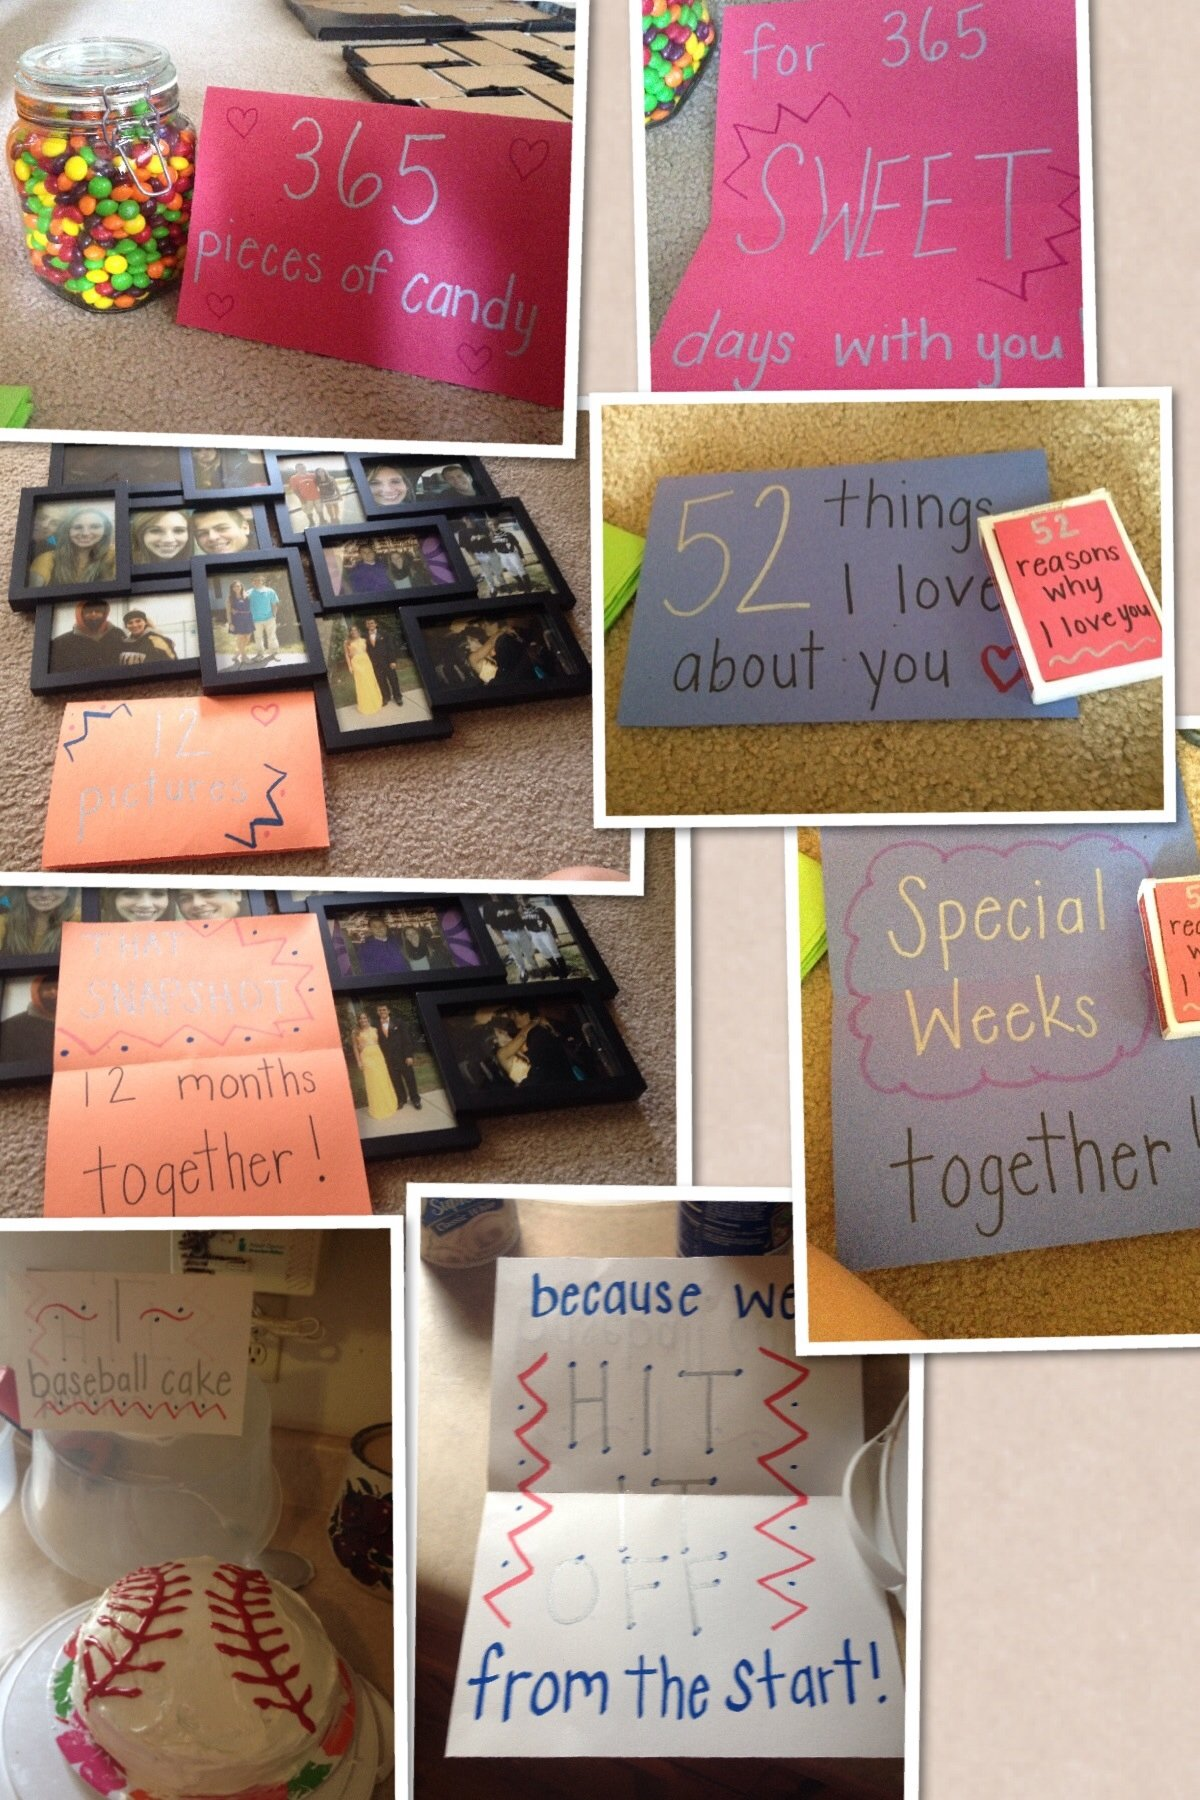 10 Great Ideas For 1 Year Anniversary gift i made for our 1 year anniversary ideas pinterest 4 2020